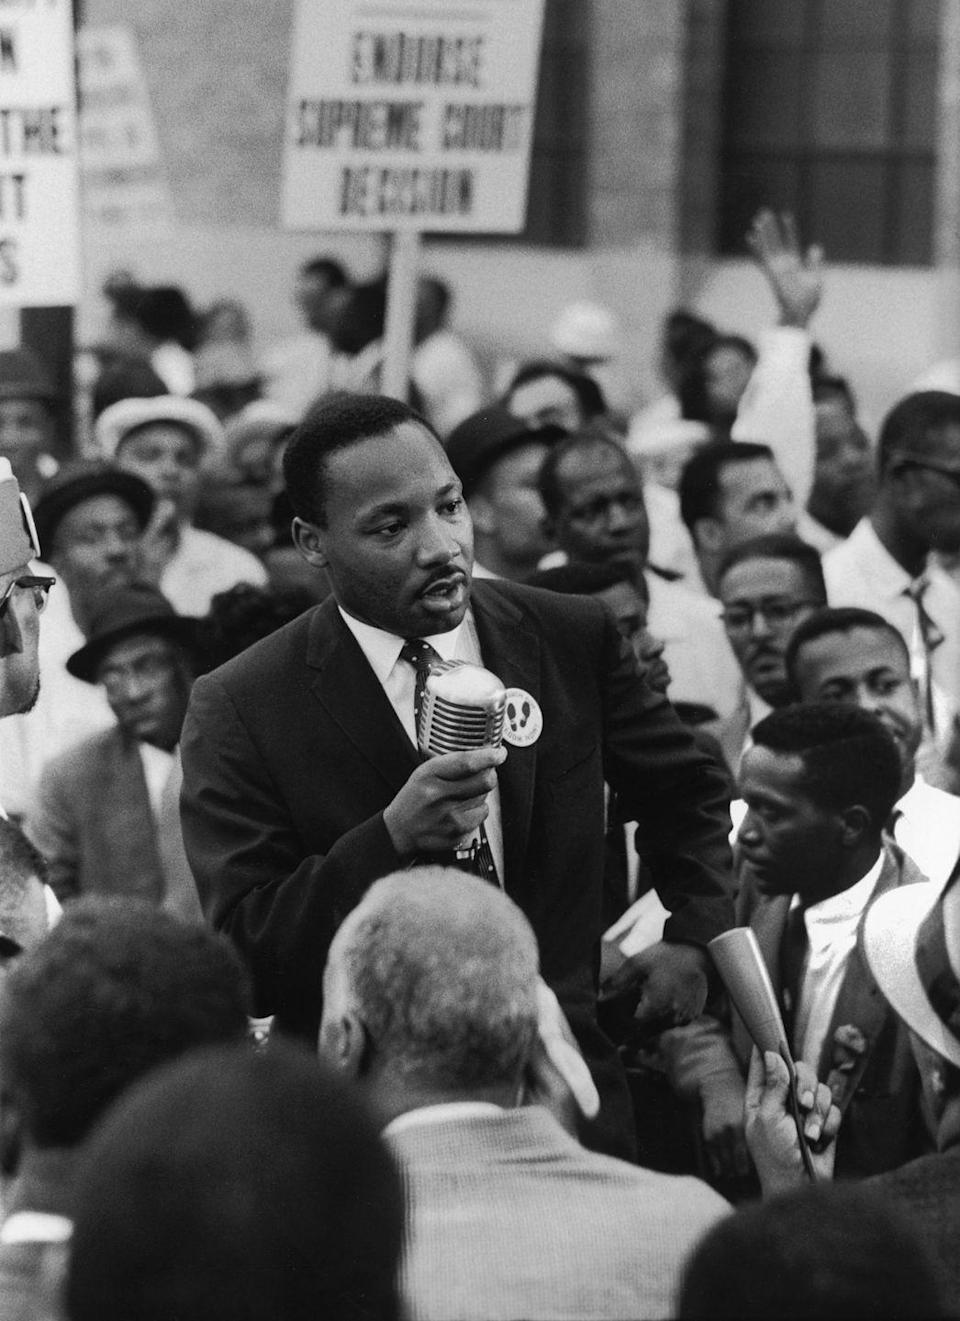 """<p>Civil Rights leader Martin Luther King Jr. became a member of the Alpha Phi Alpha fraternity when he was studying at Boston University. King kept a close connection with the institution and <a href=""""https://kinginstitute.stanford.edu/encyclopedia/alpha-phi-alpha-fraternity"""" rel=""""nofollow noopener"""" target=""""_blank"""" data-ylk=""""slk:spoke at many of the nation's chapter organizations"""" class=""""link rapid-noclick-resp"""">spoke at many of the nation's chapter organizations</a> during his civil rights movement in the '60s. </p>"""